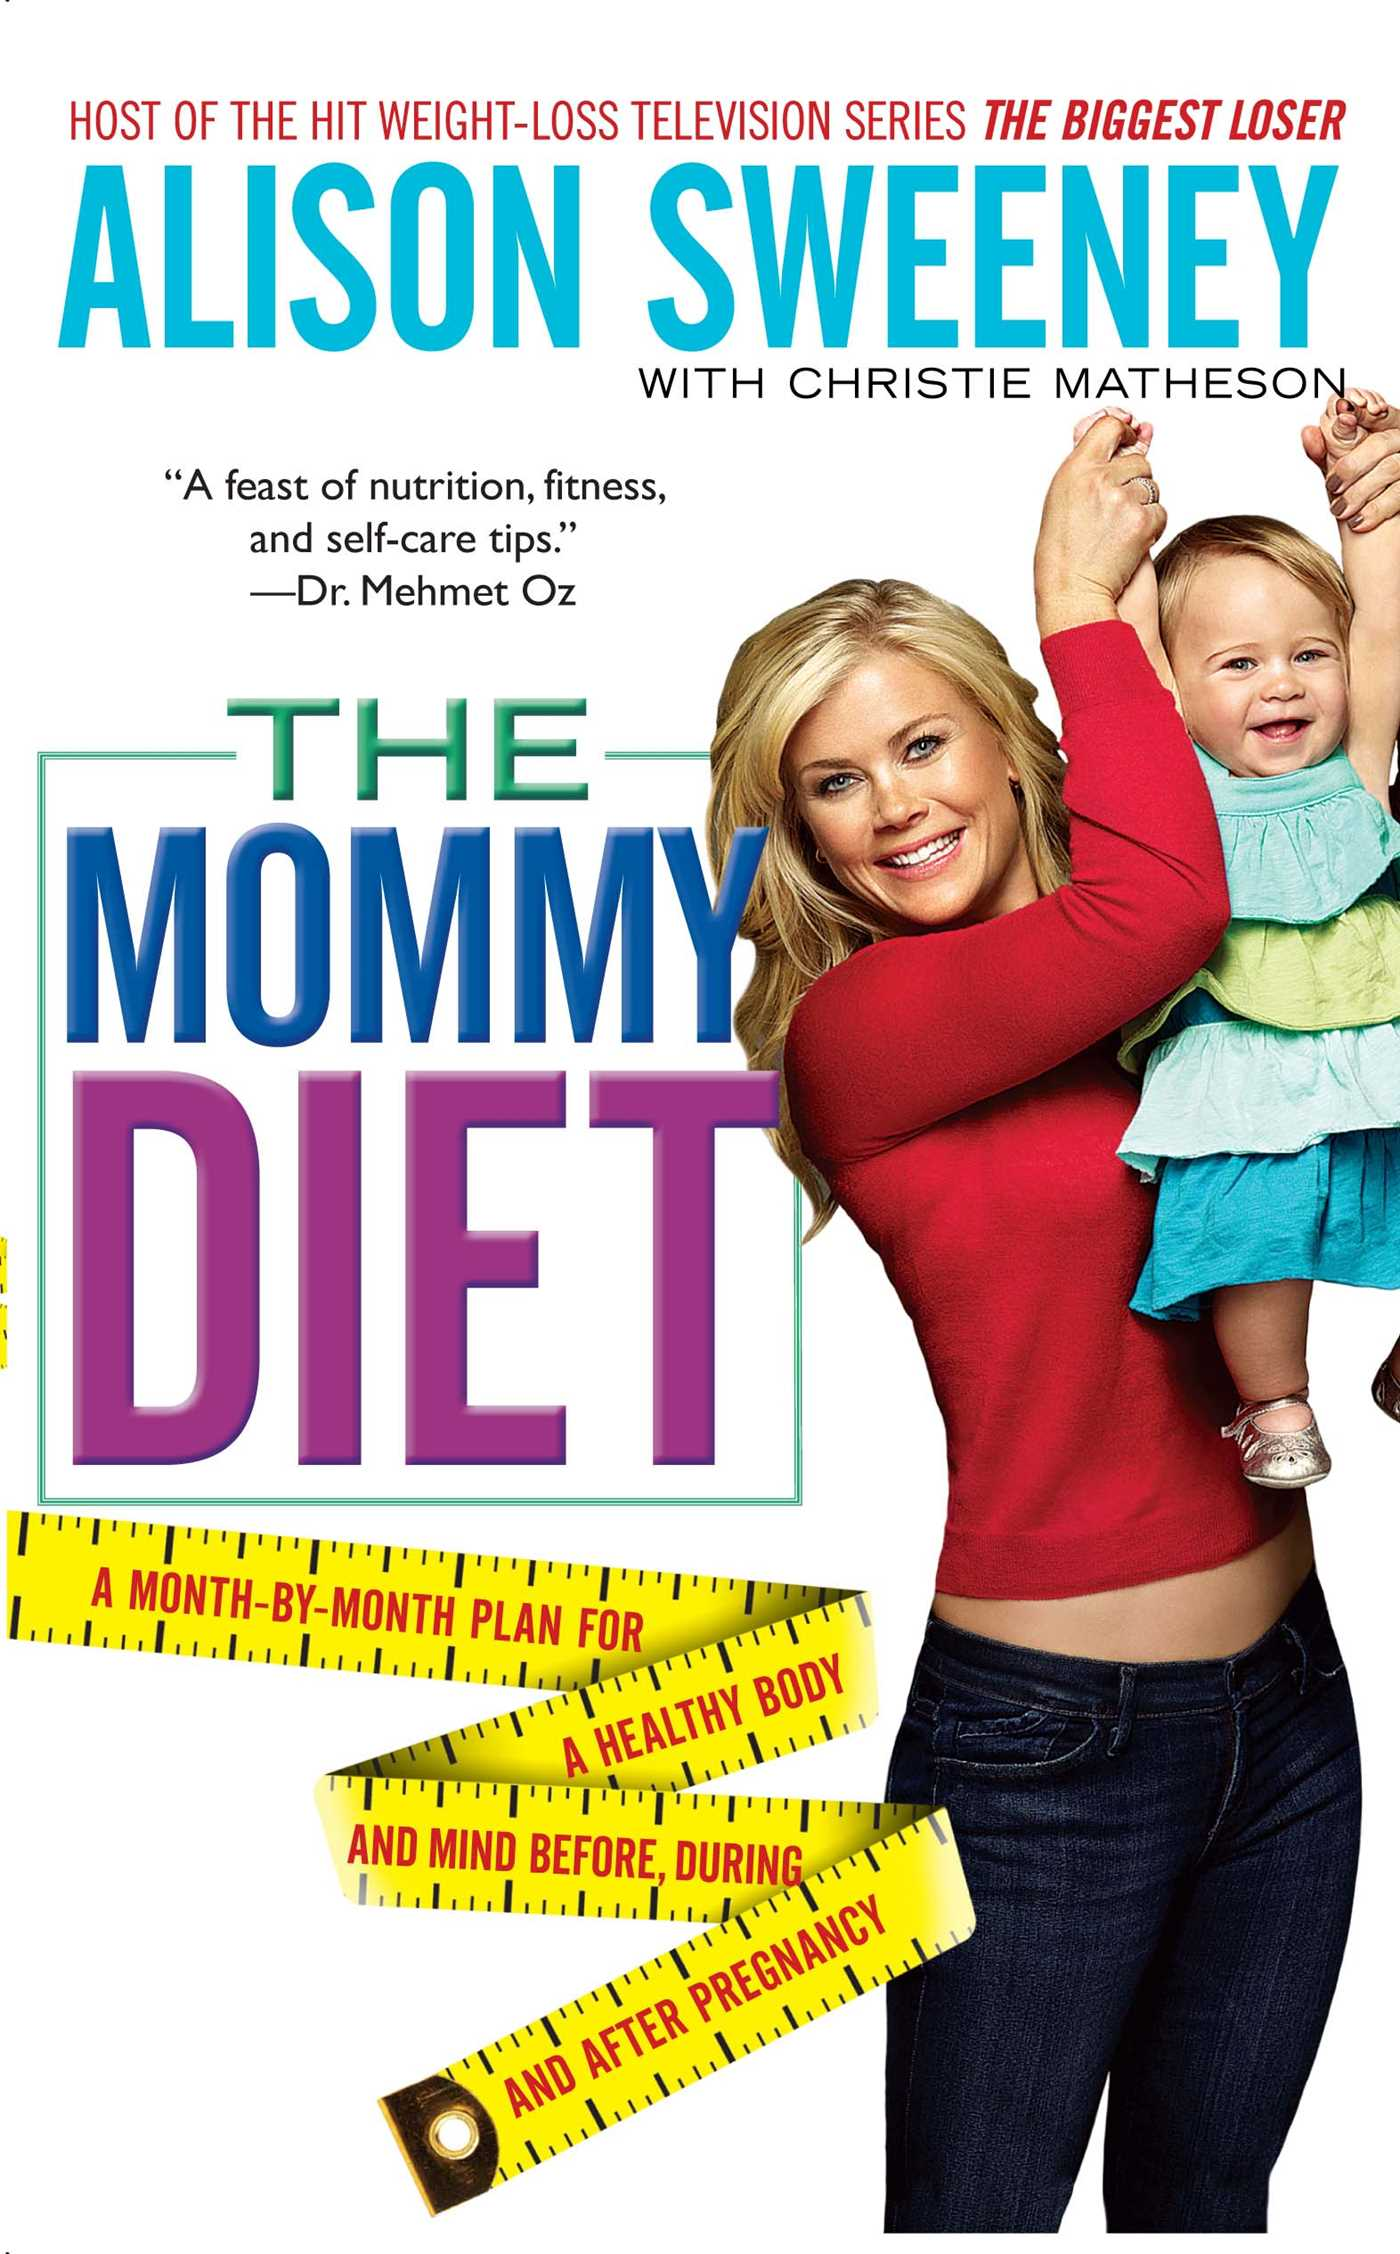 Alison Sweeney Oops the mommy diet | bookalison sweeney, christie matheson